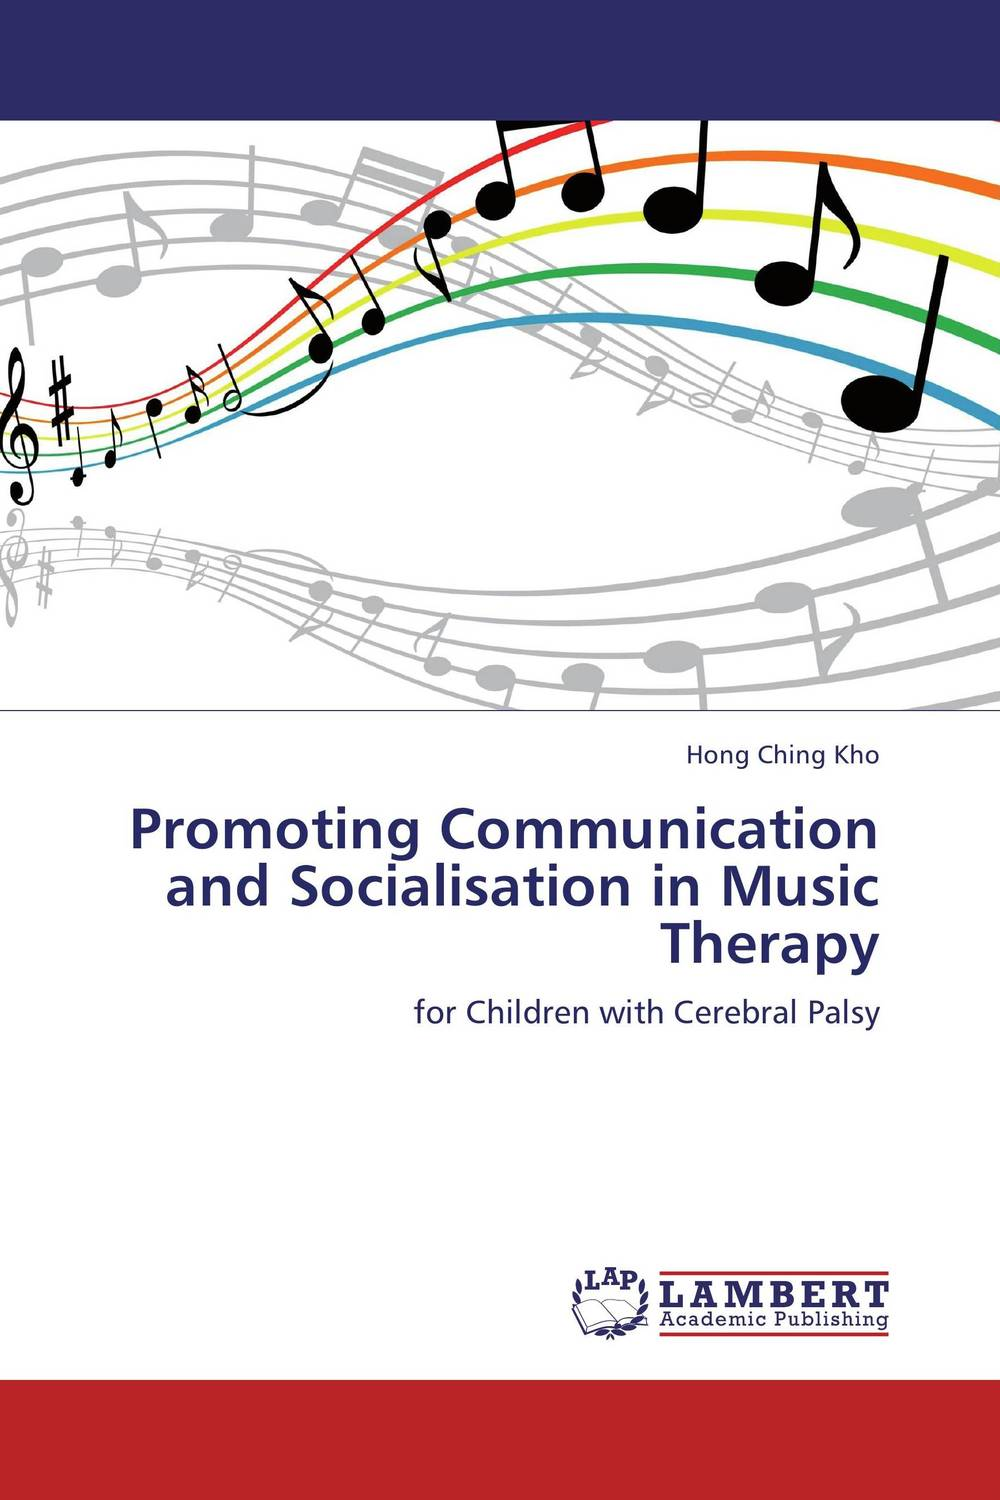 Promoting Communication and Socialisation in Music Therapy playful approaches to serious problems – narrative therapy with children